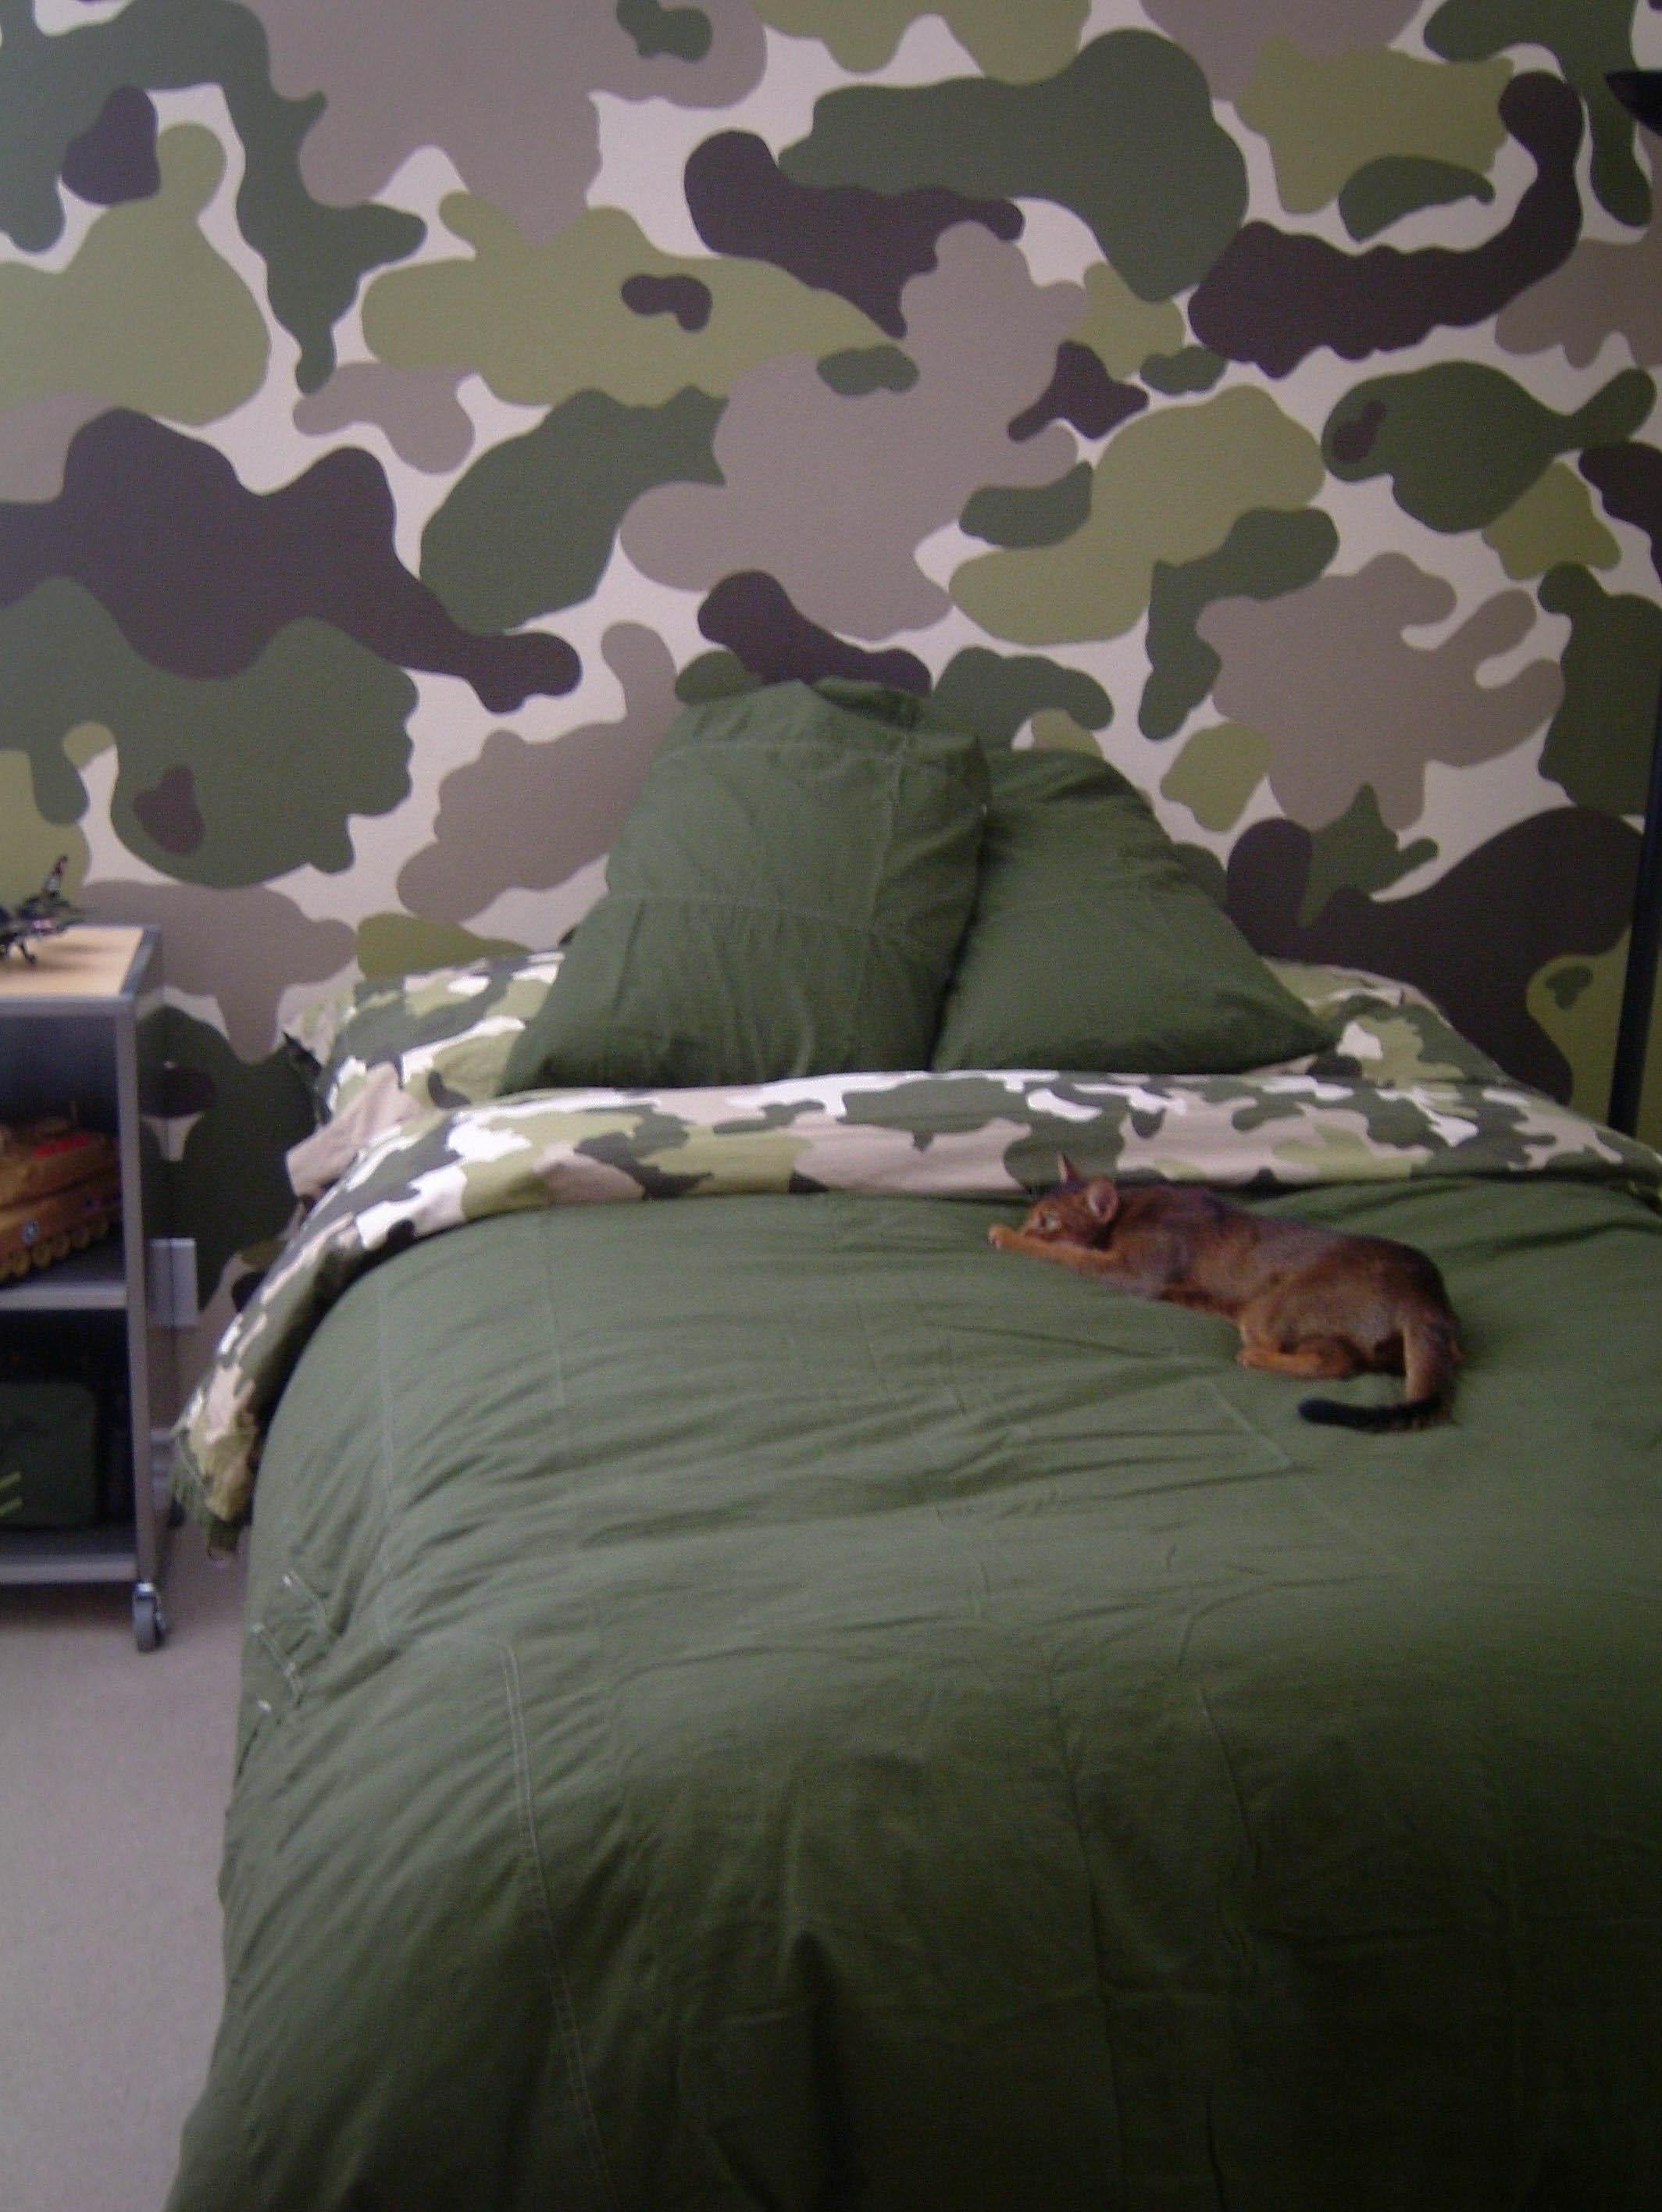 Room Swap Part 1 – The Modchik Regarding Camouflage Wall Art (View 11 of 20)